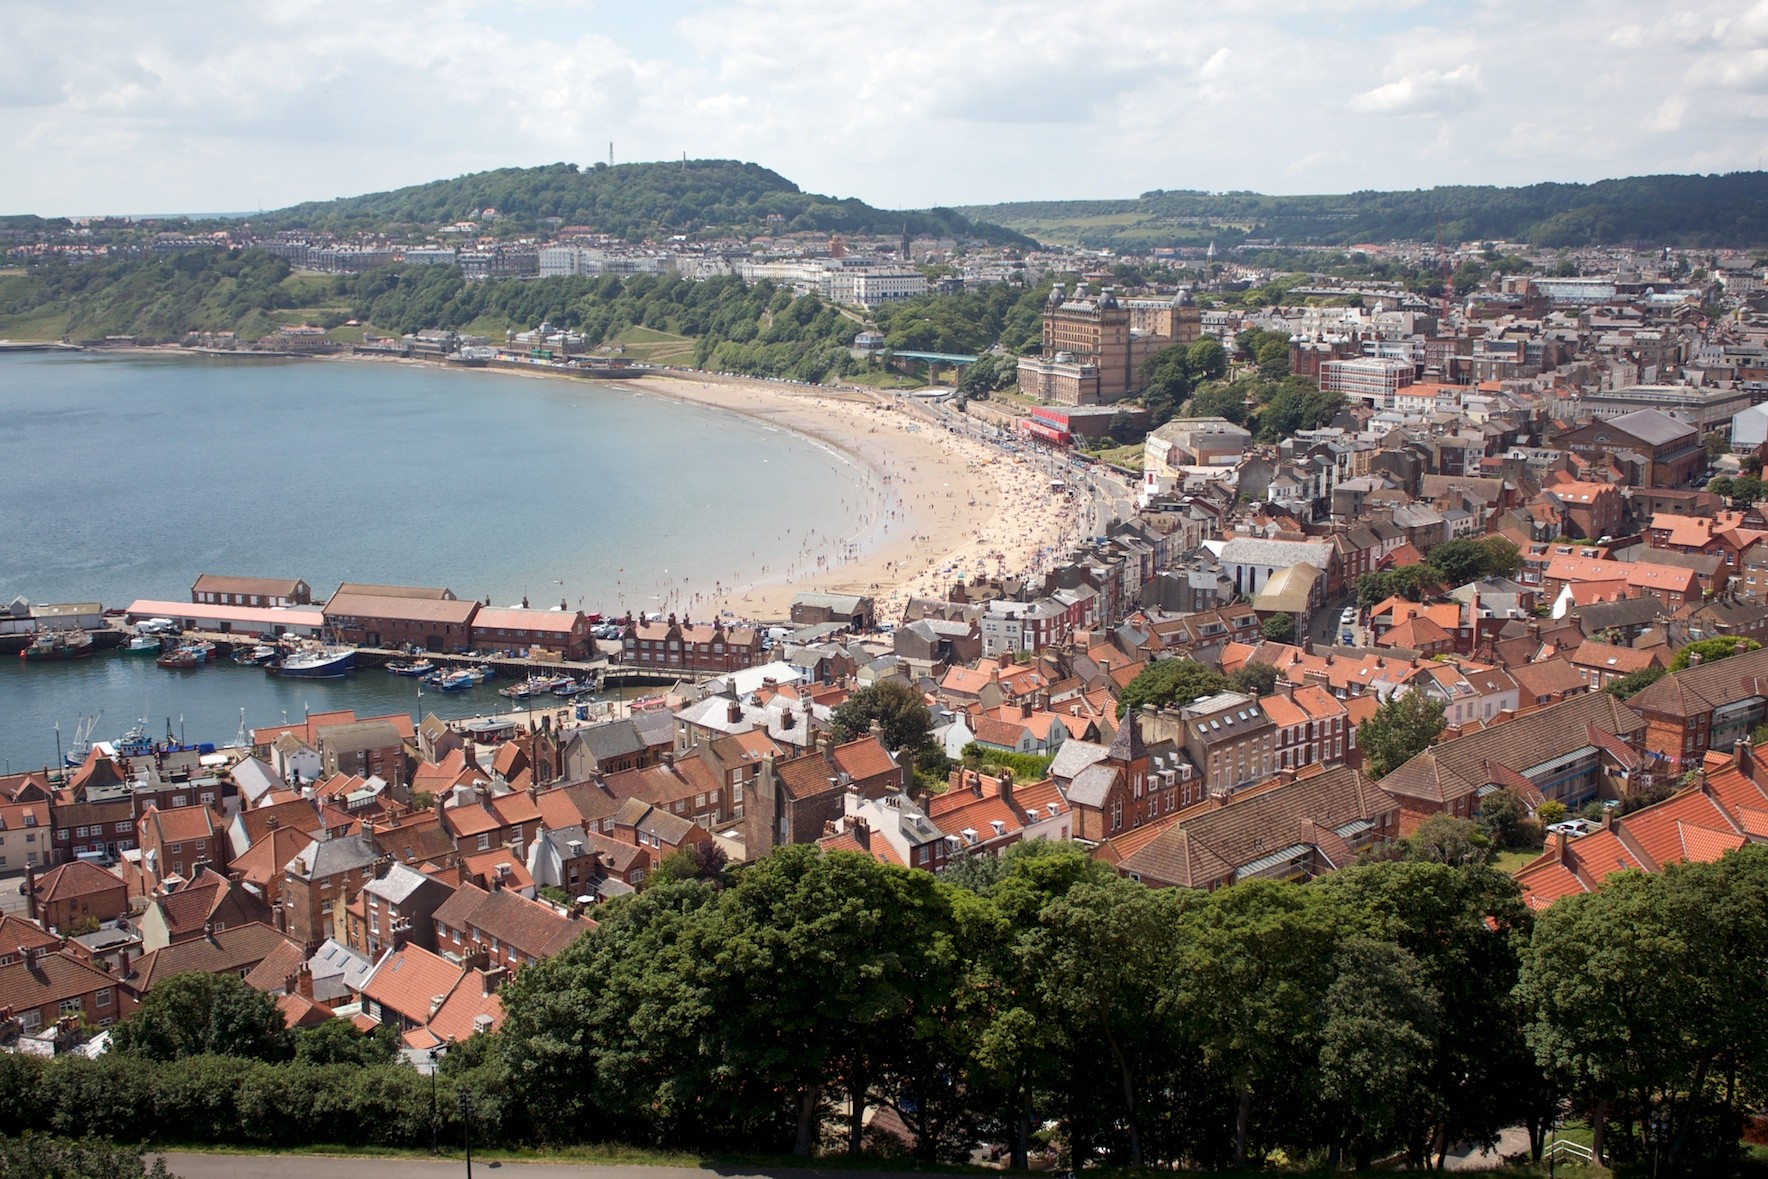 scarborough Scarborough (/ ˈ s k ɑːr b ər ə /) is a town on the north sea coast of north yorkshire, england historically part of the north riding of yorkshire, the town lies between 10-230 feet (3-70 m) above sea level, rising steeply northward and westward from the harbour on to limestone cliffs.